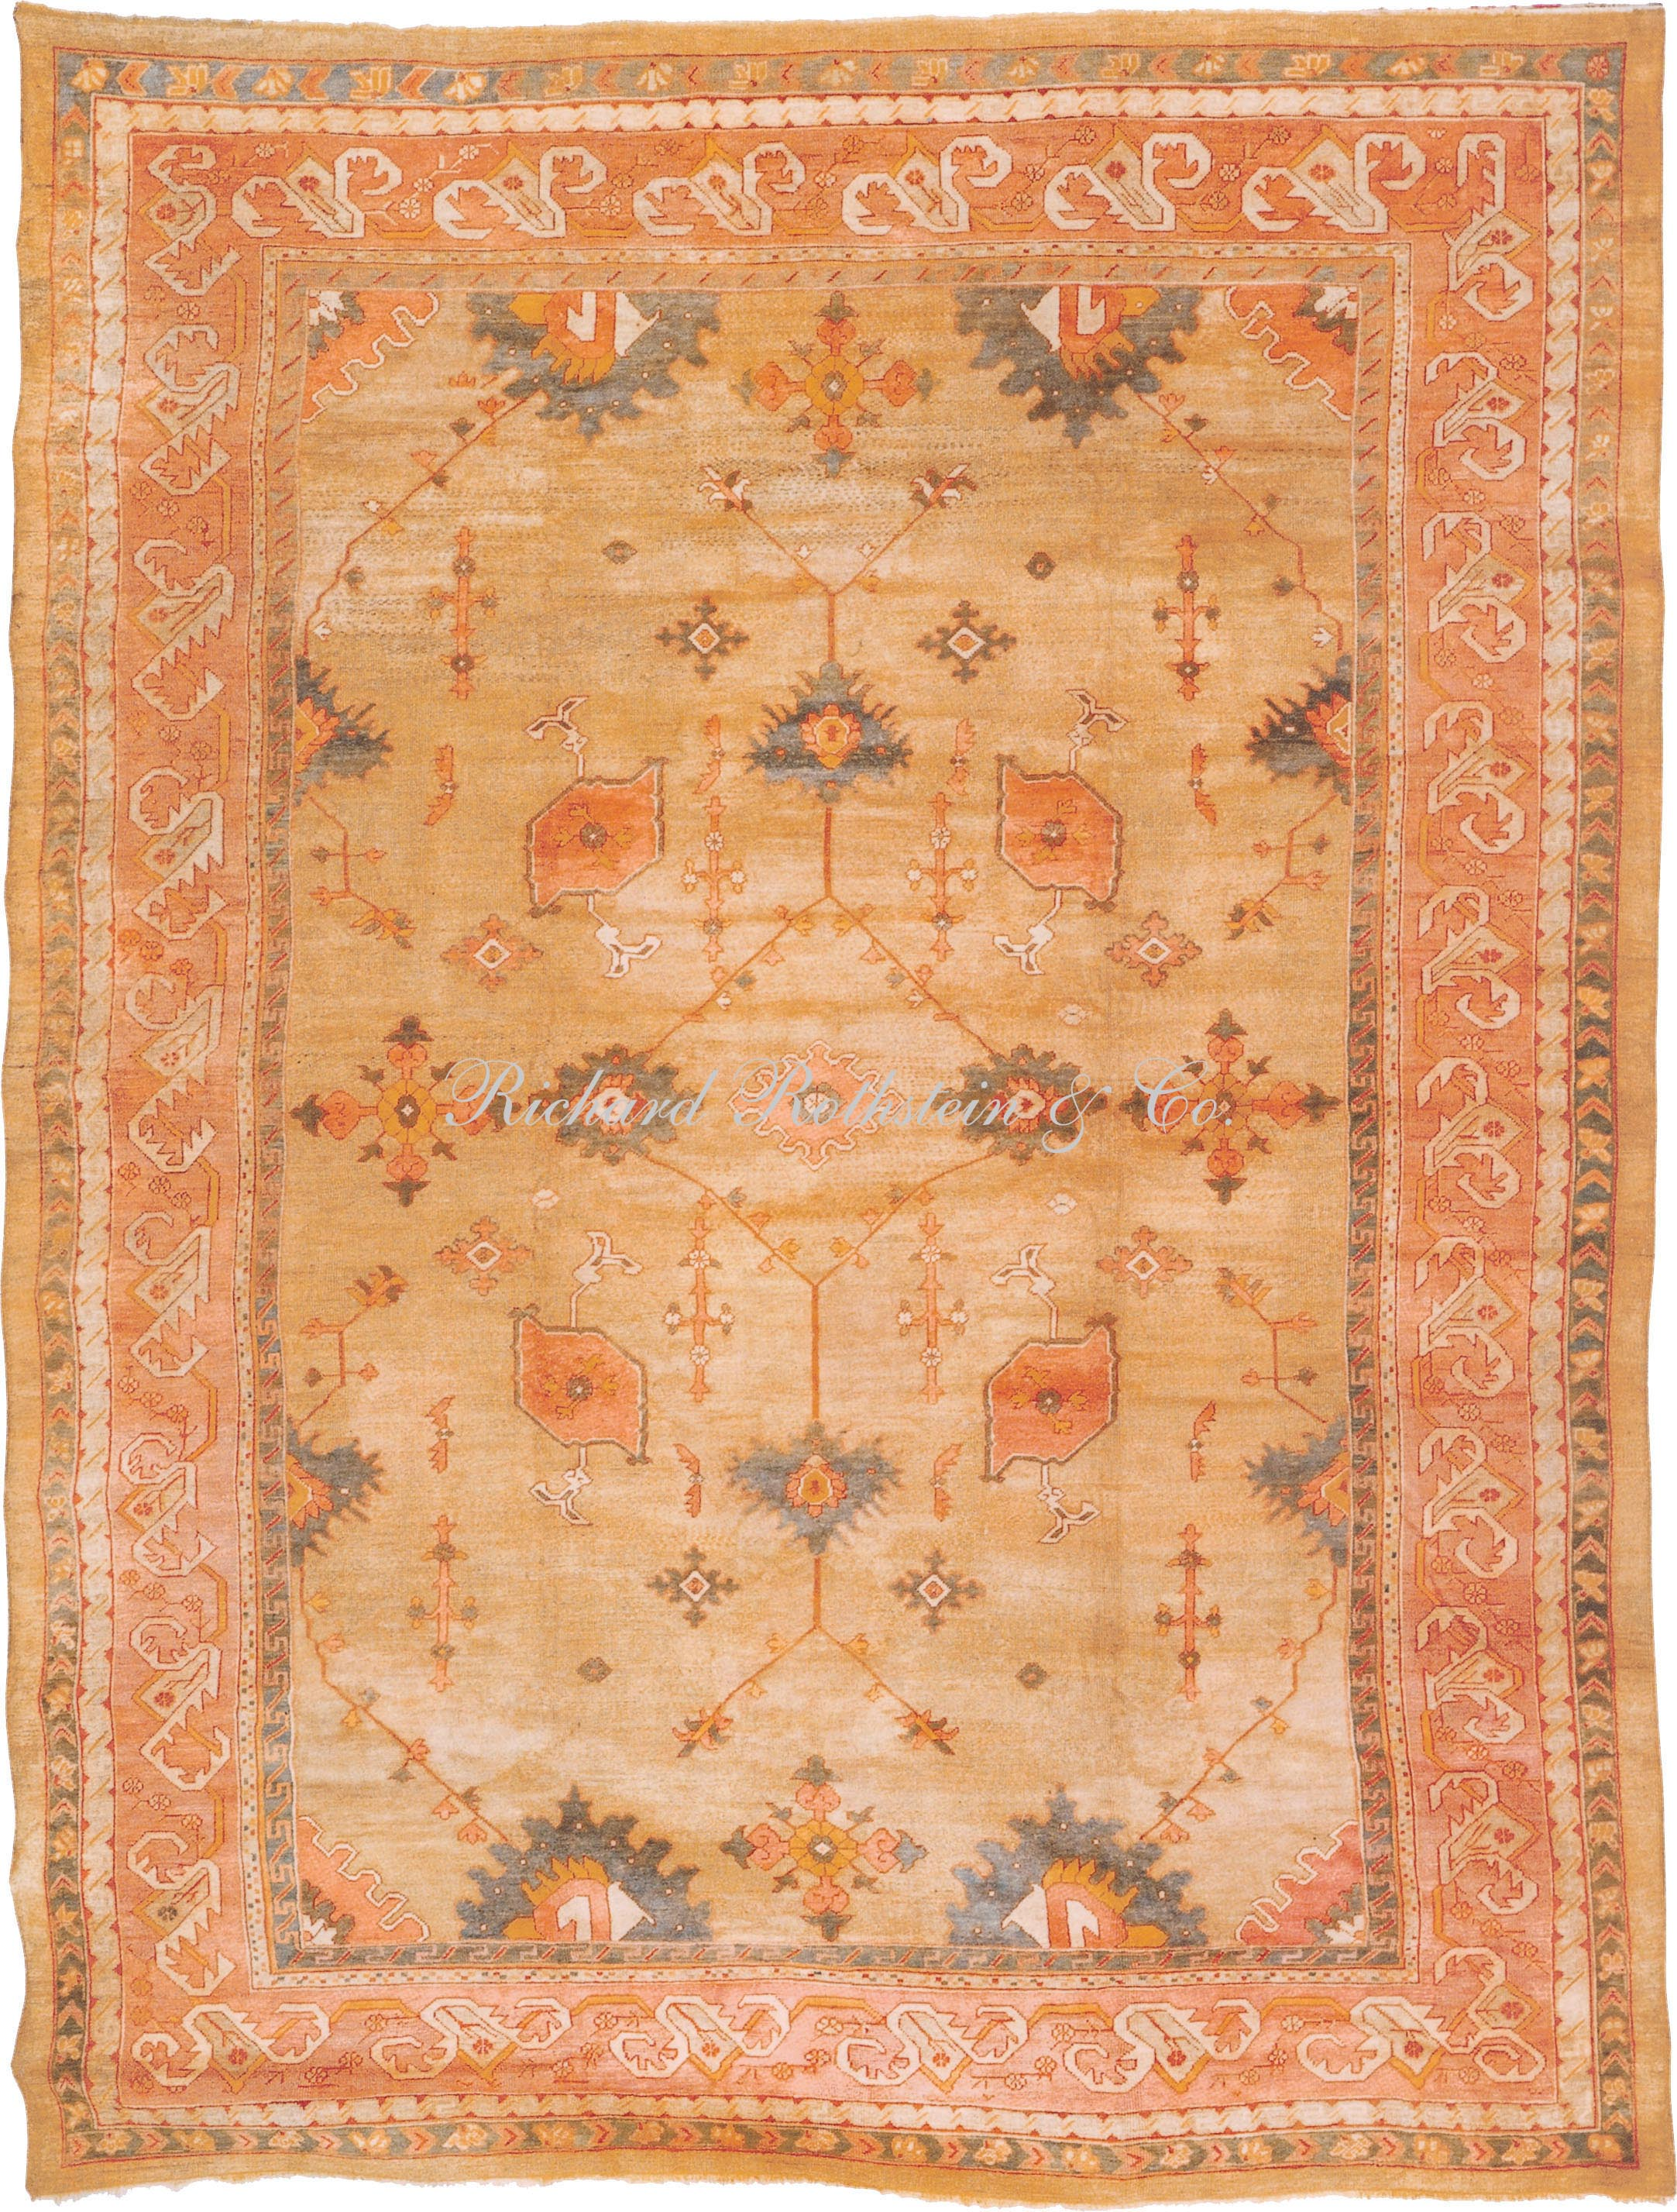 Cute oushak rugs for floorings and rugs ideas with antique oushak rugs